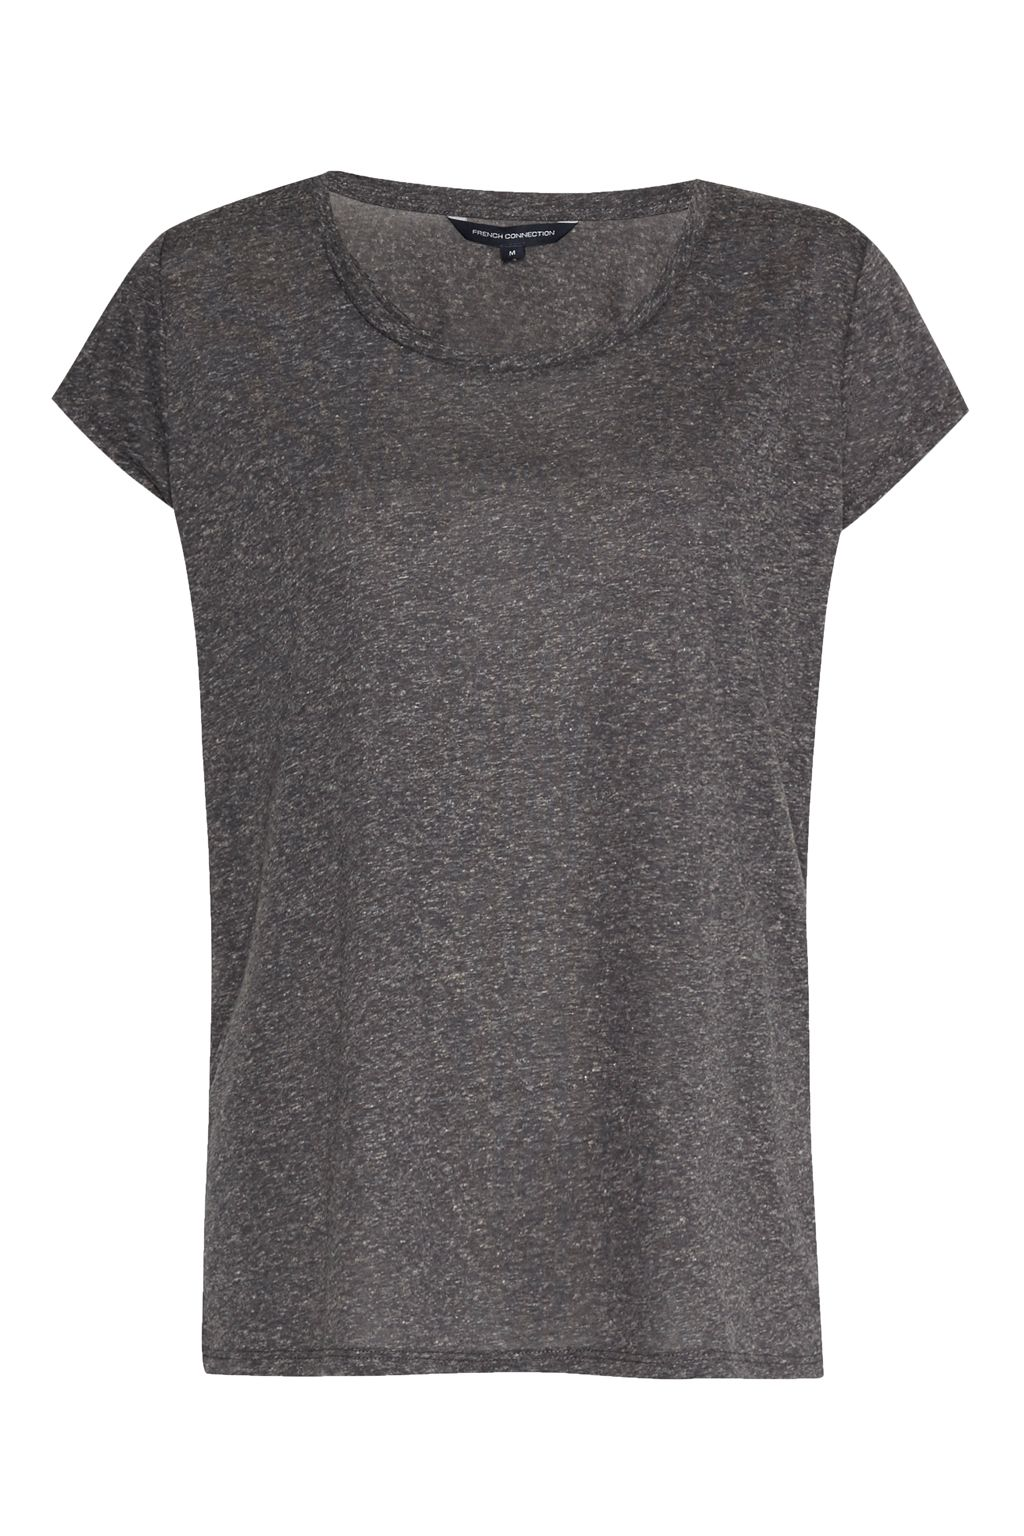 French Connection Hetty Marl T-Shirt, Grey